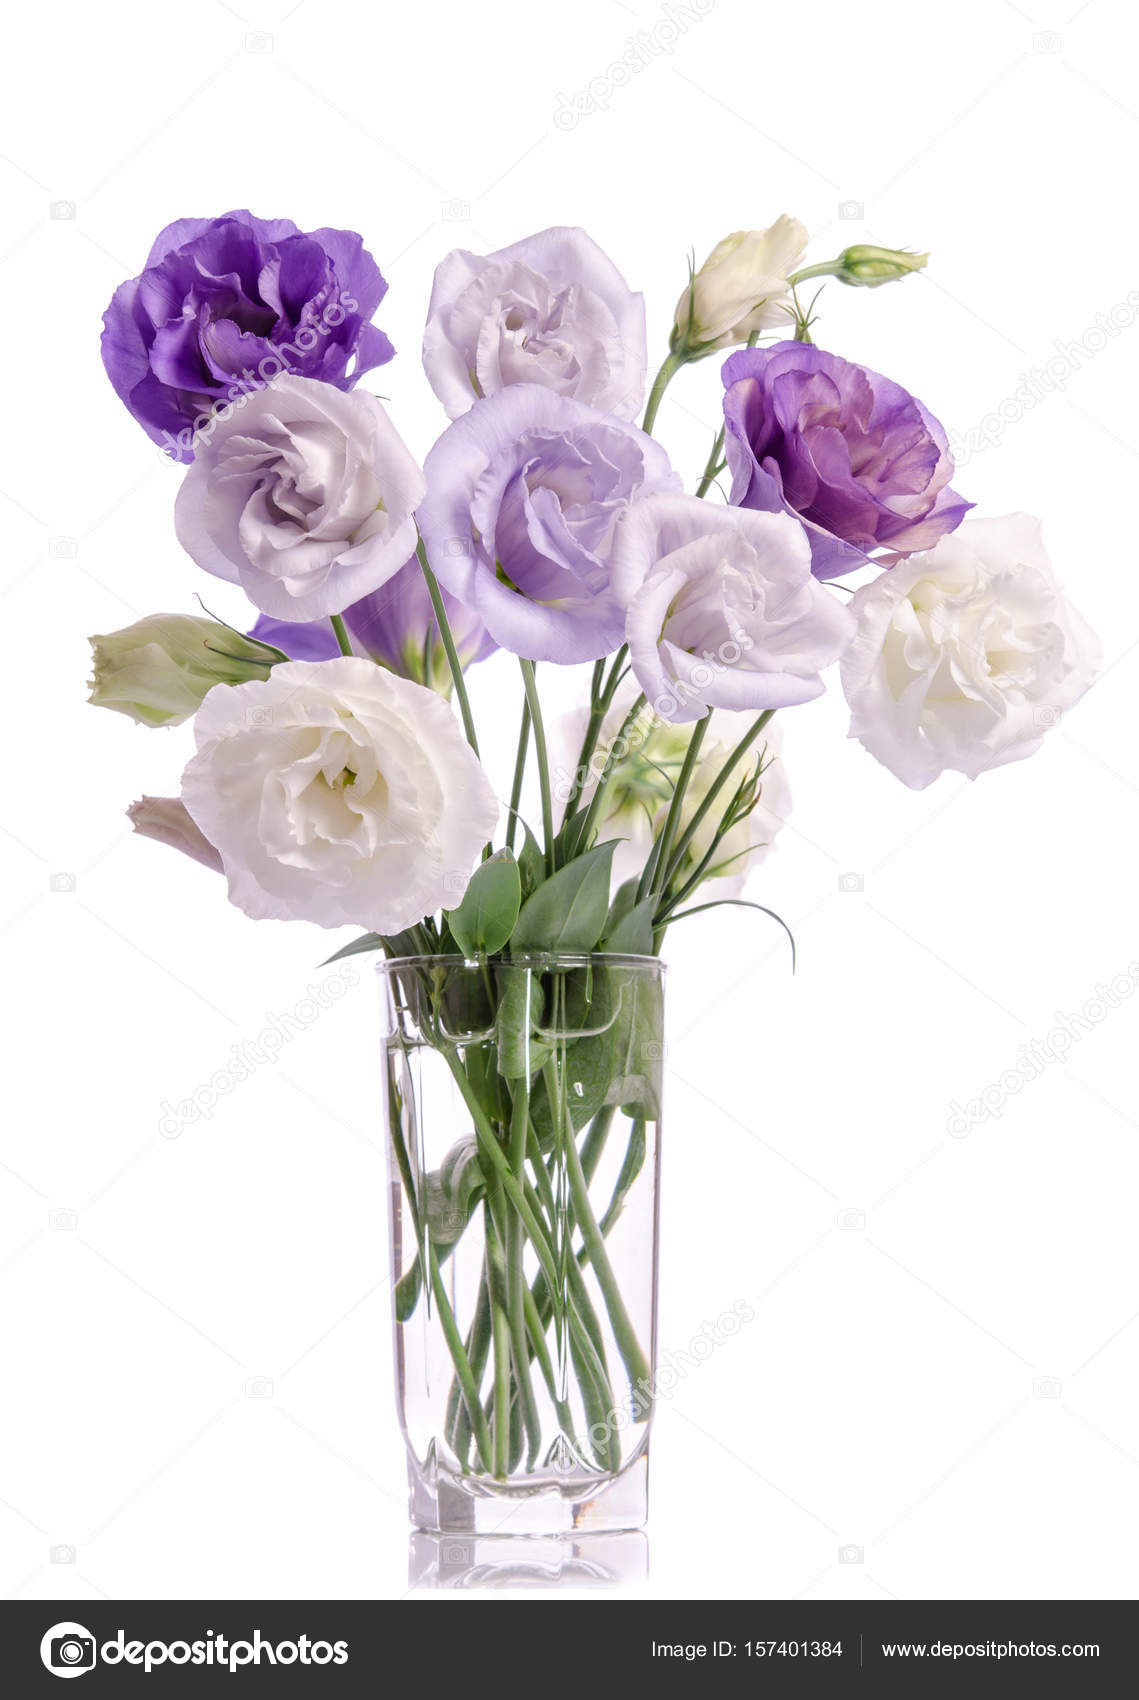 Bunch Of Violet White And Violet Eustoma Flowers In Glass Vase